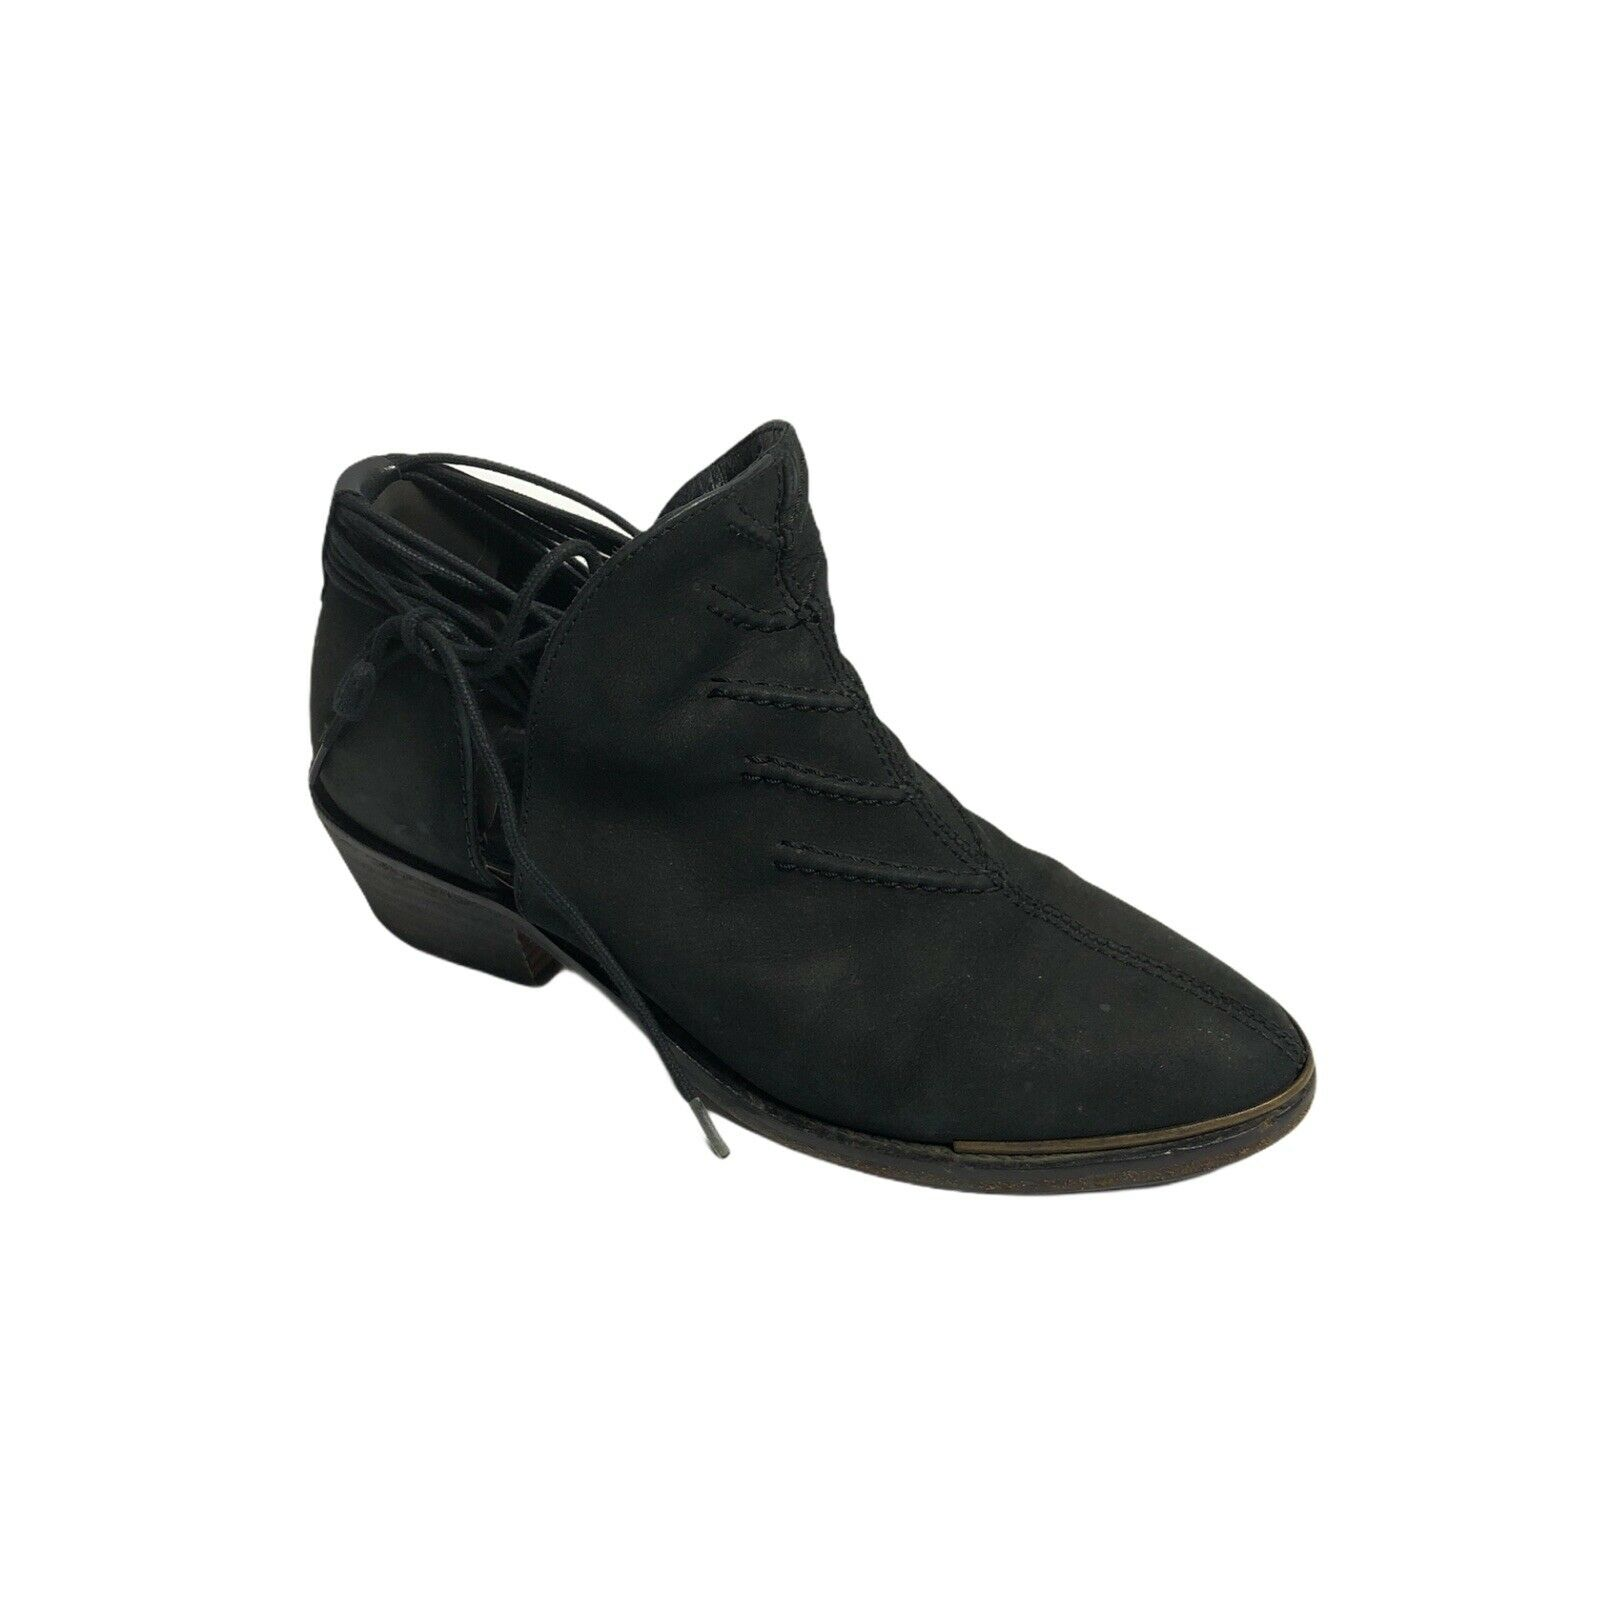 Varese Shoes Womens Ankle Booties Black Soft Leather Portugal Eu 38